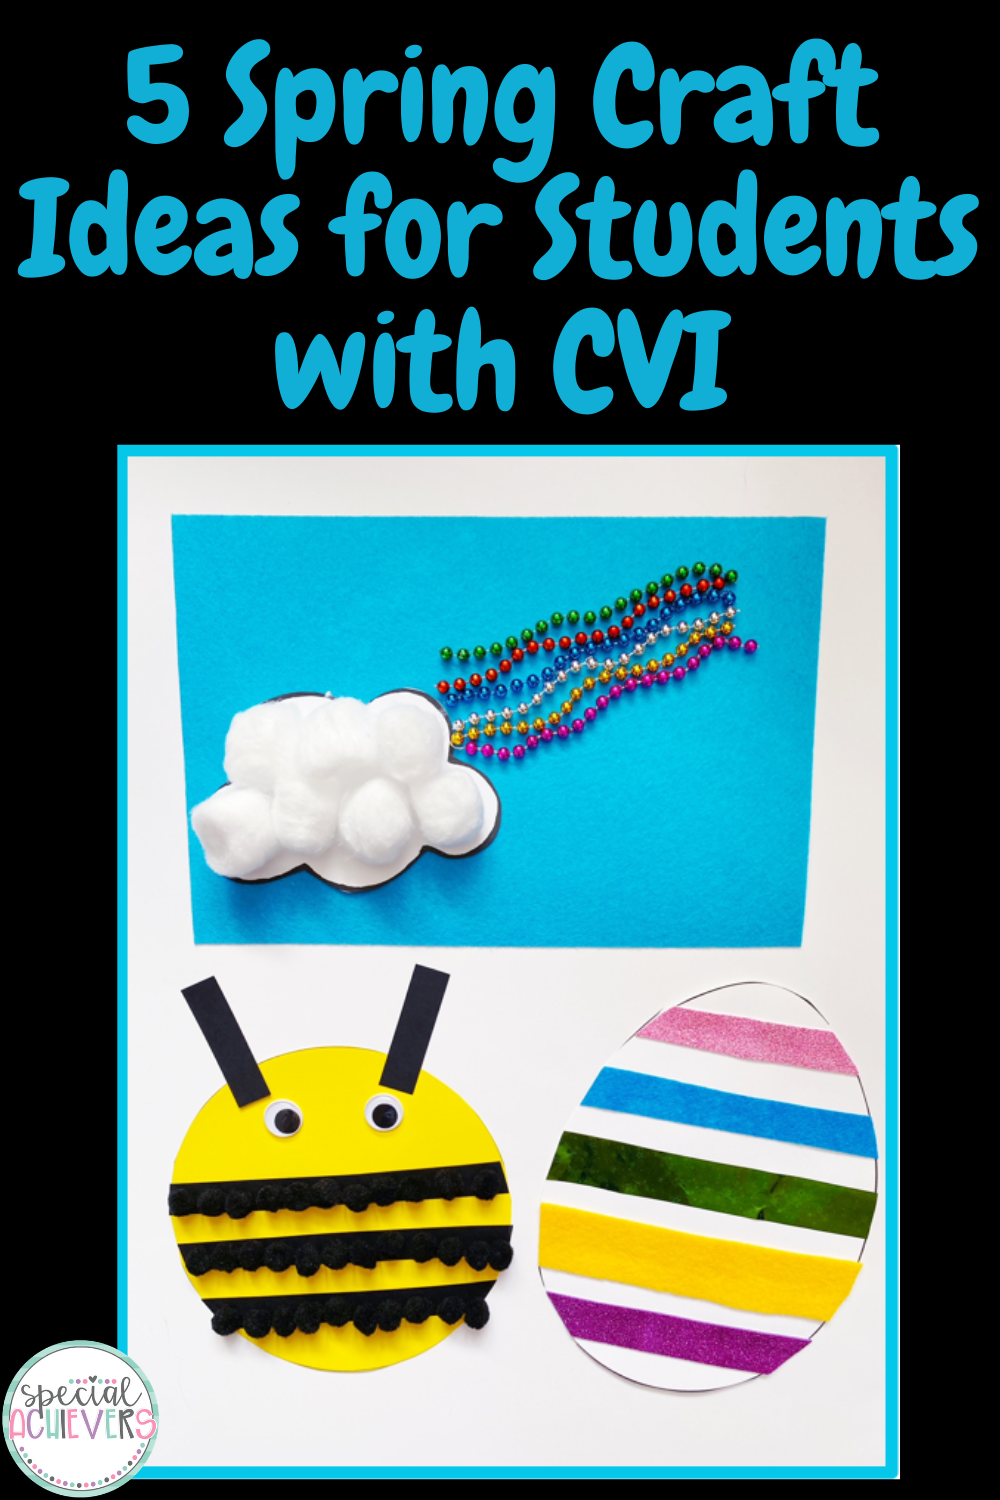 "The text ""5 Spring Craft Ideas for Students with CVI"" is written at the top. Below is a picture of three CVI-friendly crafts: a rainbow, bee, and an egg."